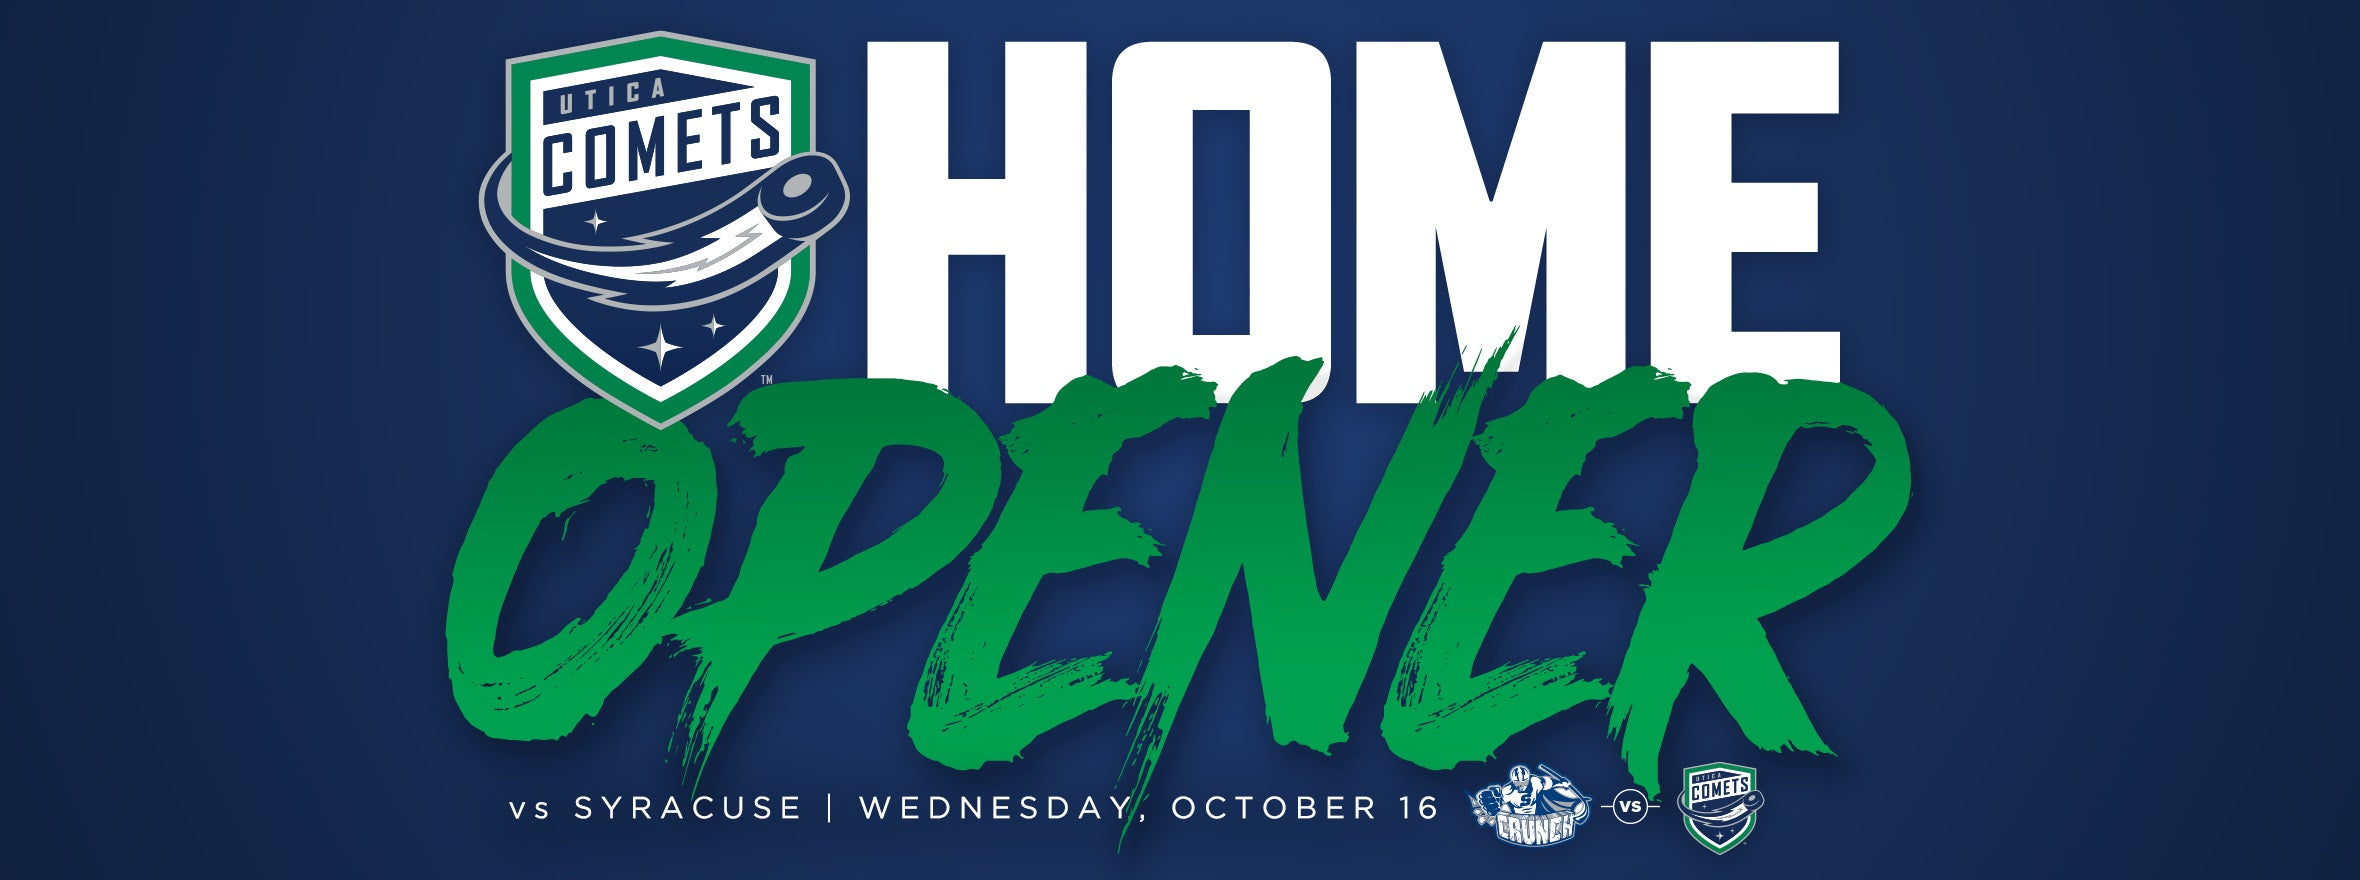 COMETS ANNOUNCE HOME OPENING DATE